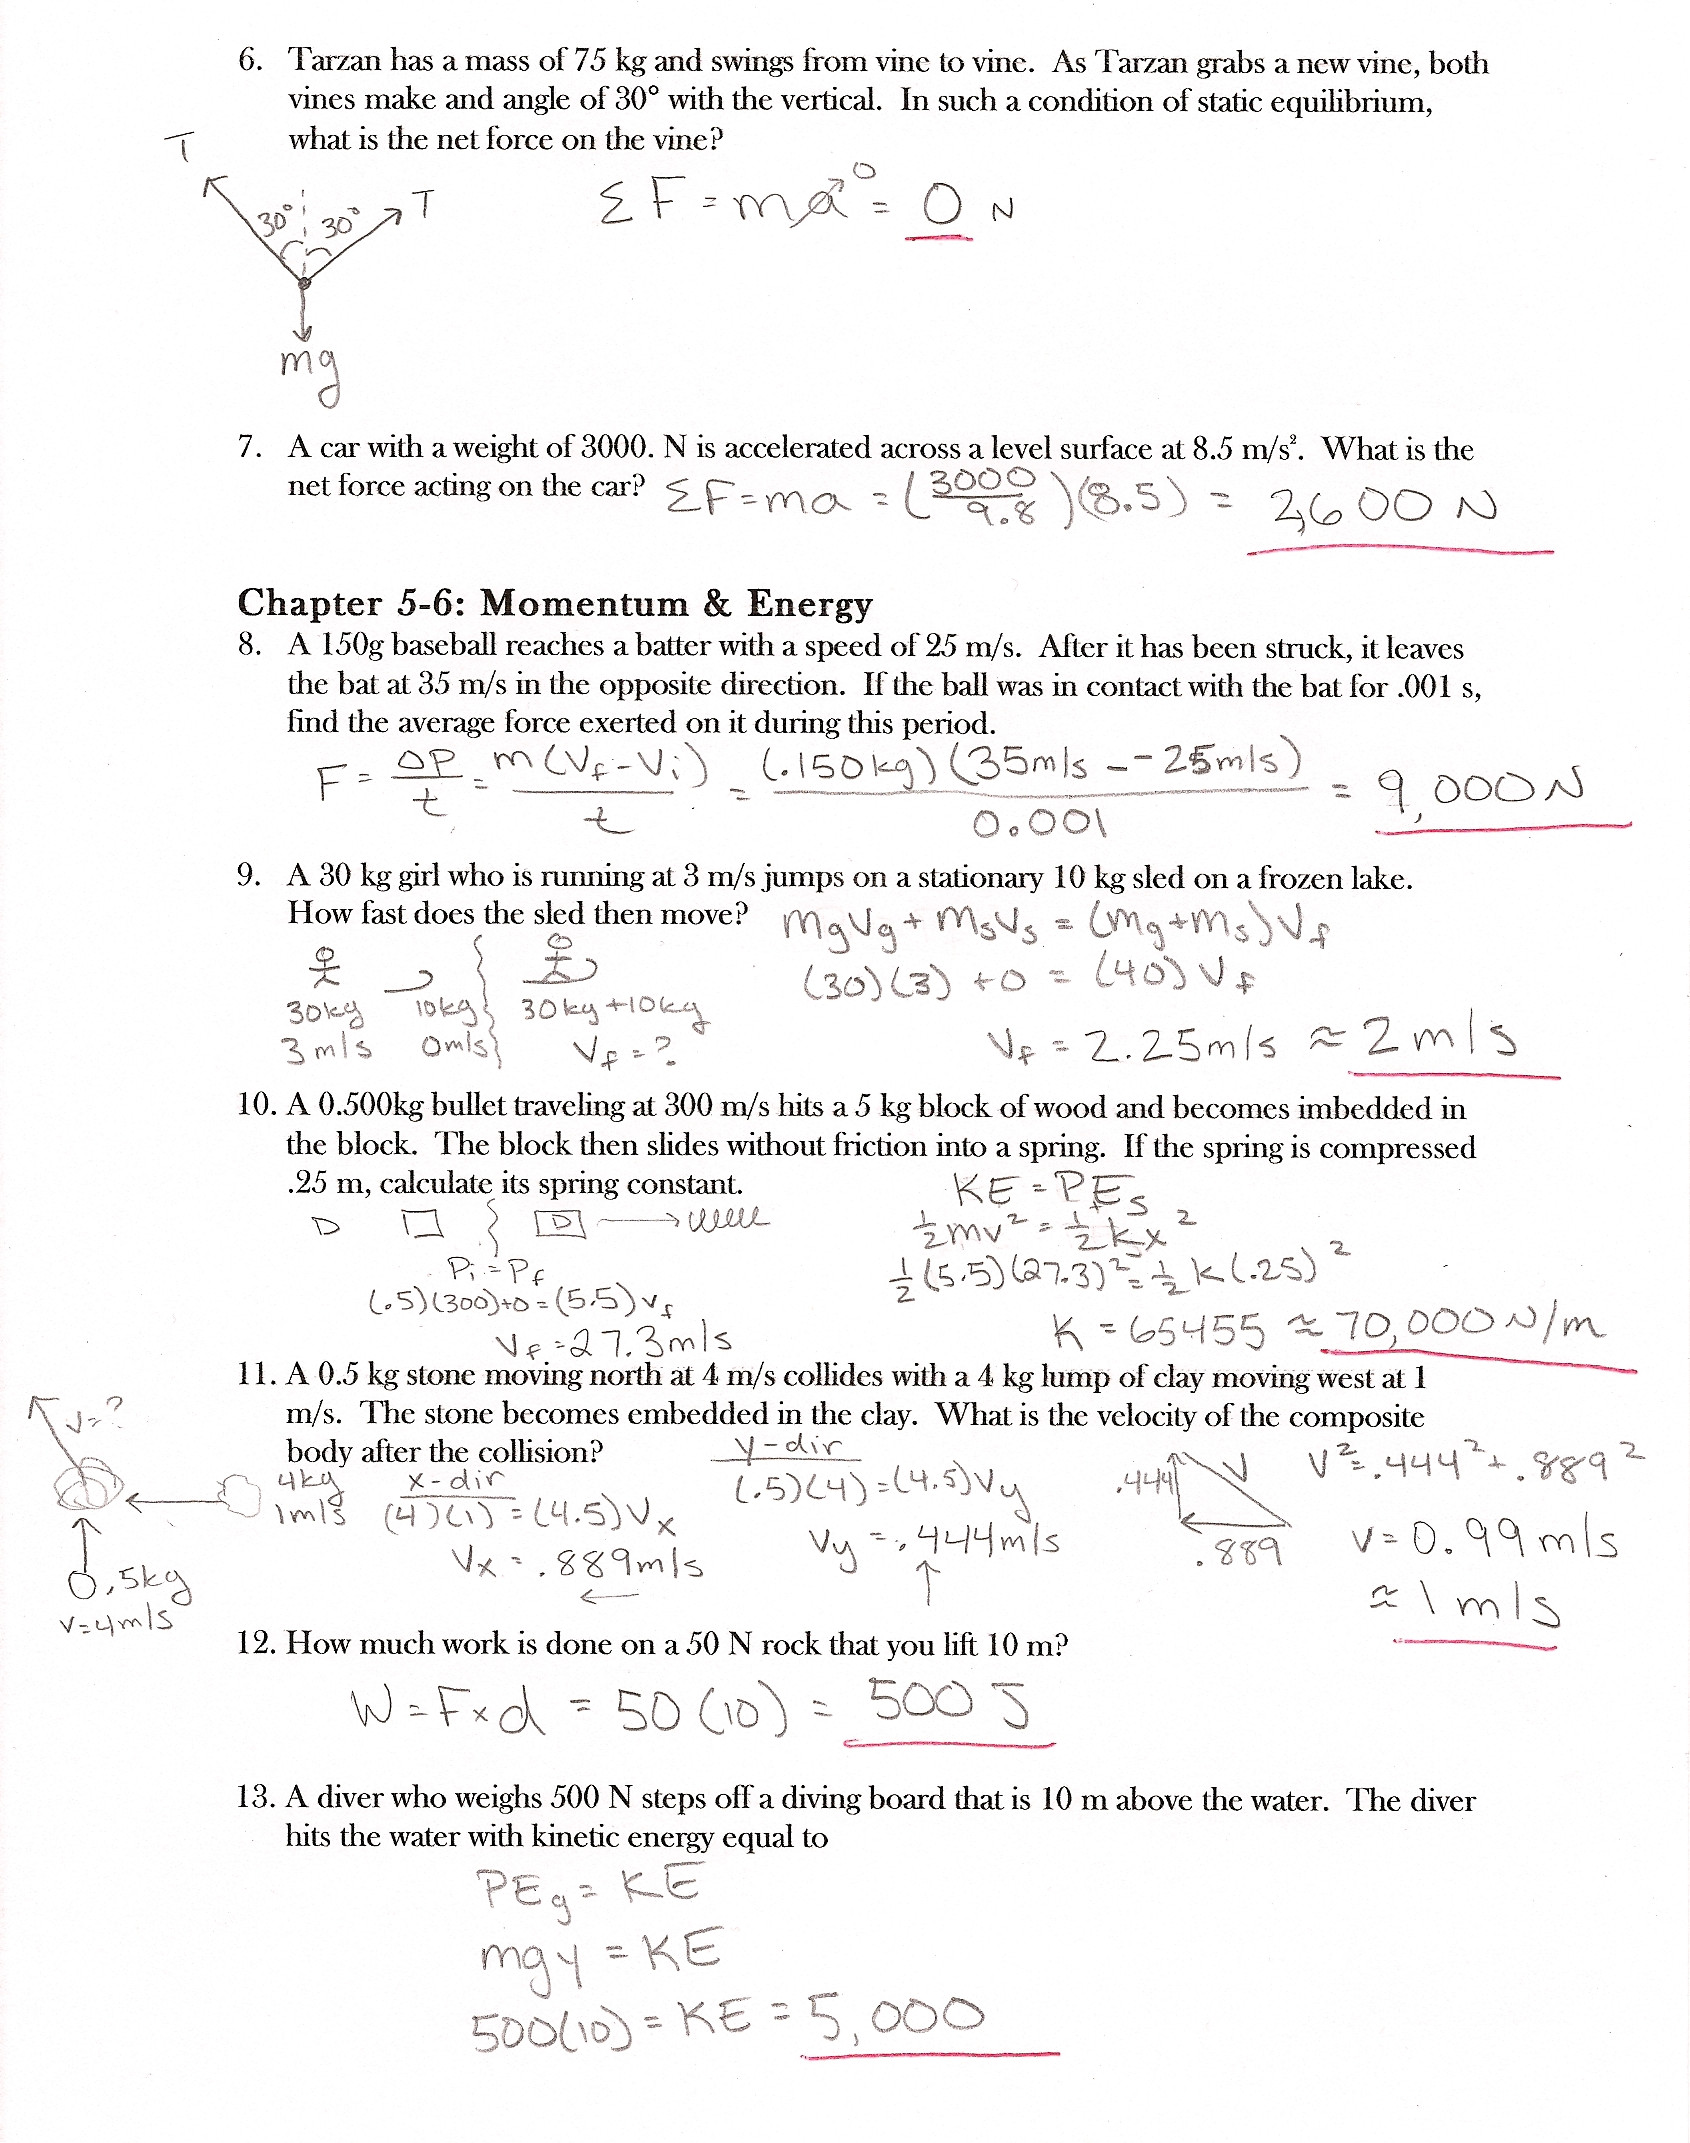 Free Fall Problems Worksheet Physics Free Fall Worksheet Answers Promotiontablecovers